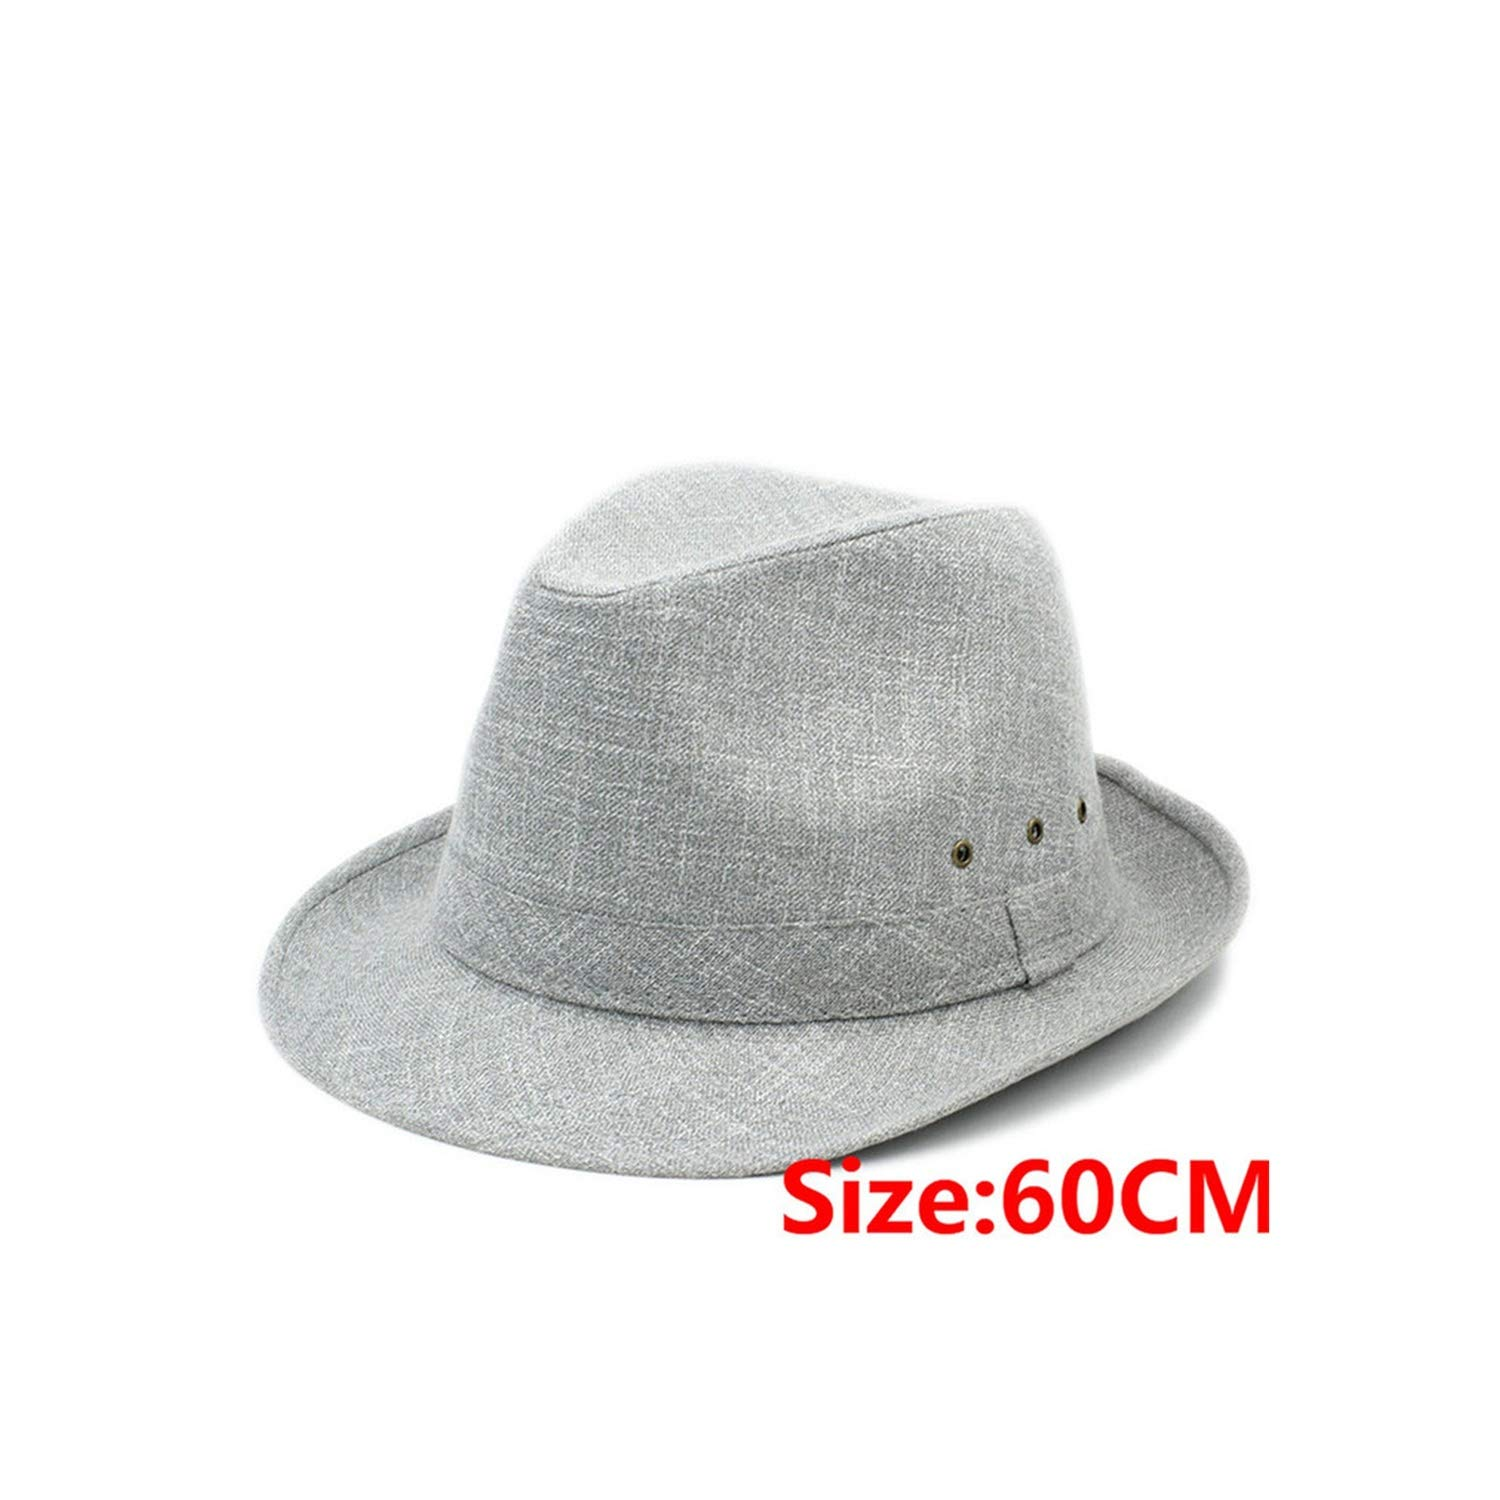 Big Size 60CM 7 inch Men Sun hat Dad Beach Fedora hat Sun Hat Trilby Gentleman